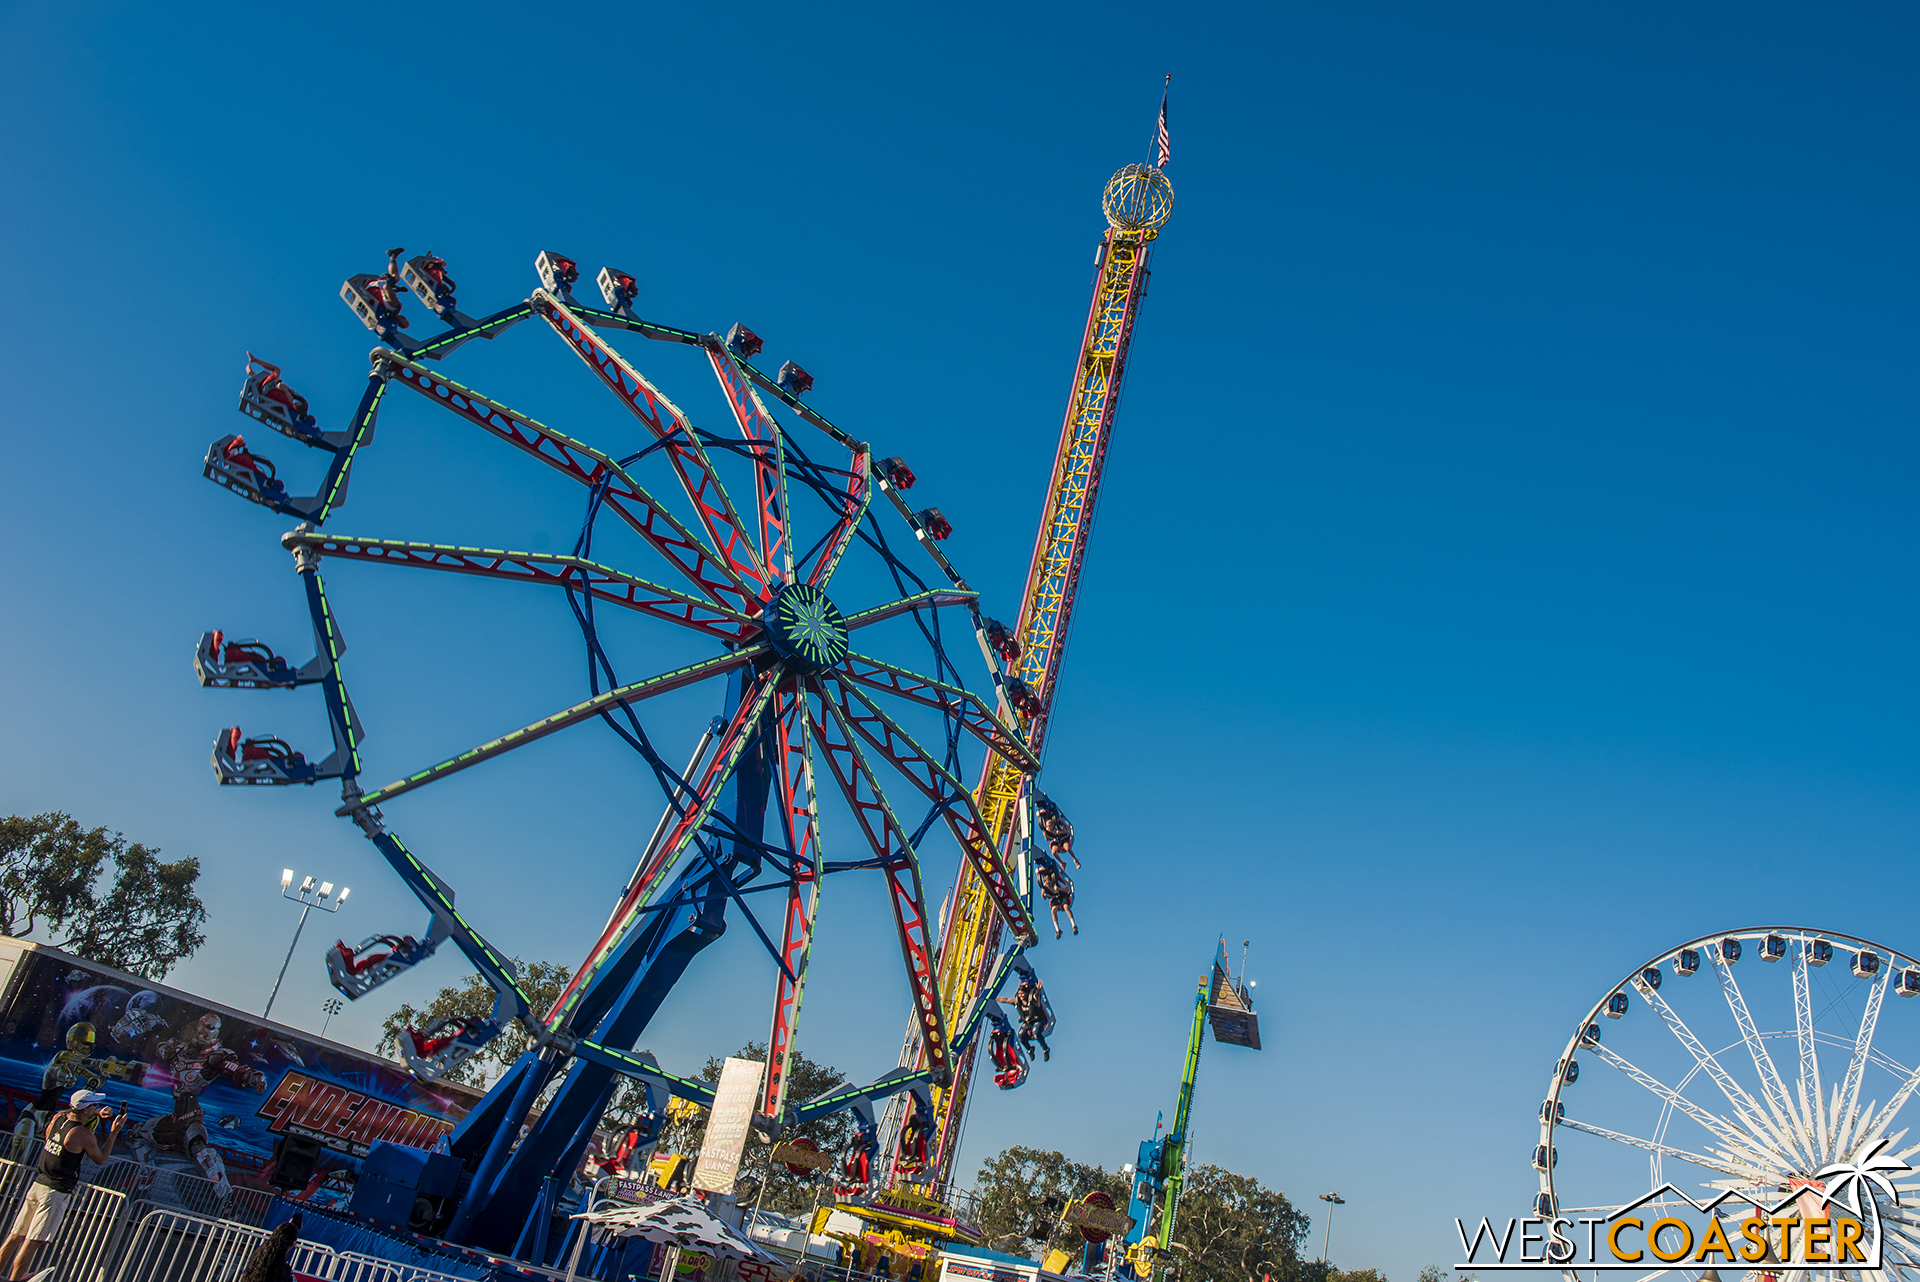 Zamperla has an Endeavour ride that I think is new to the OC Fair this year.